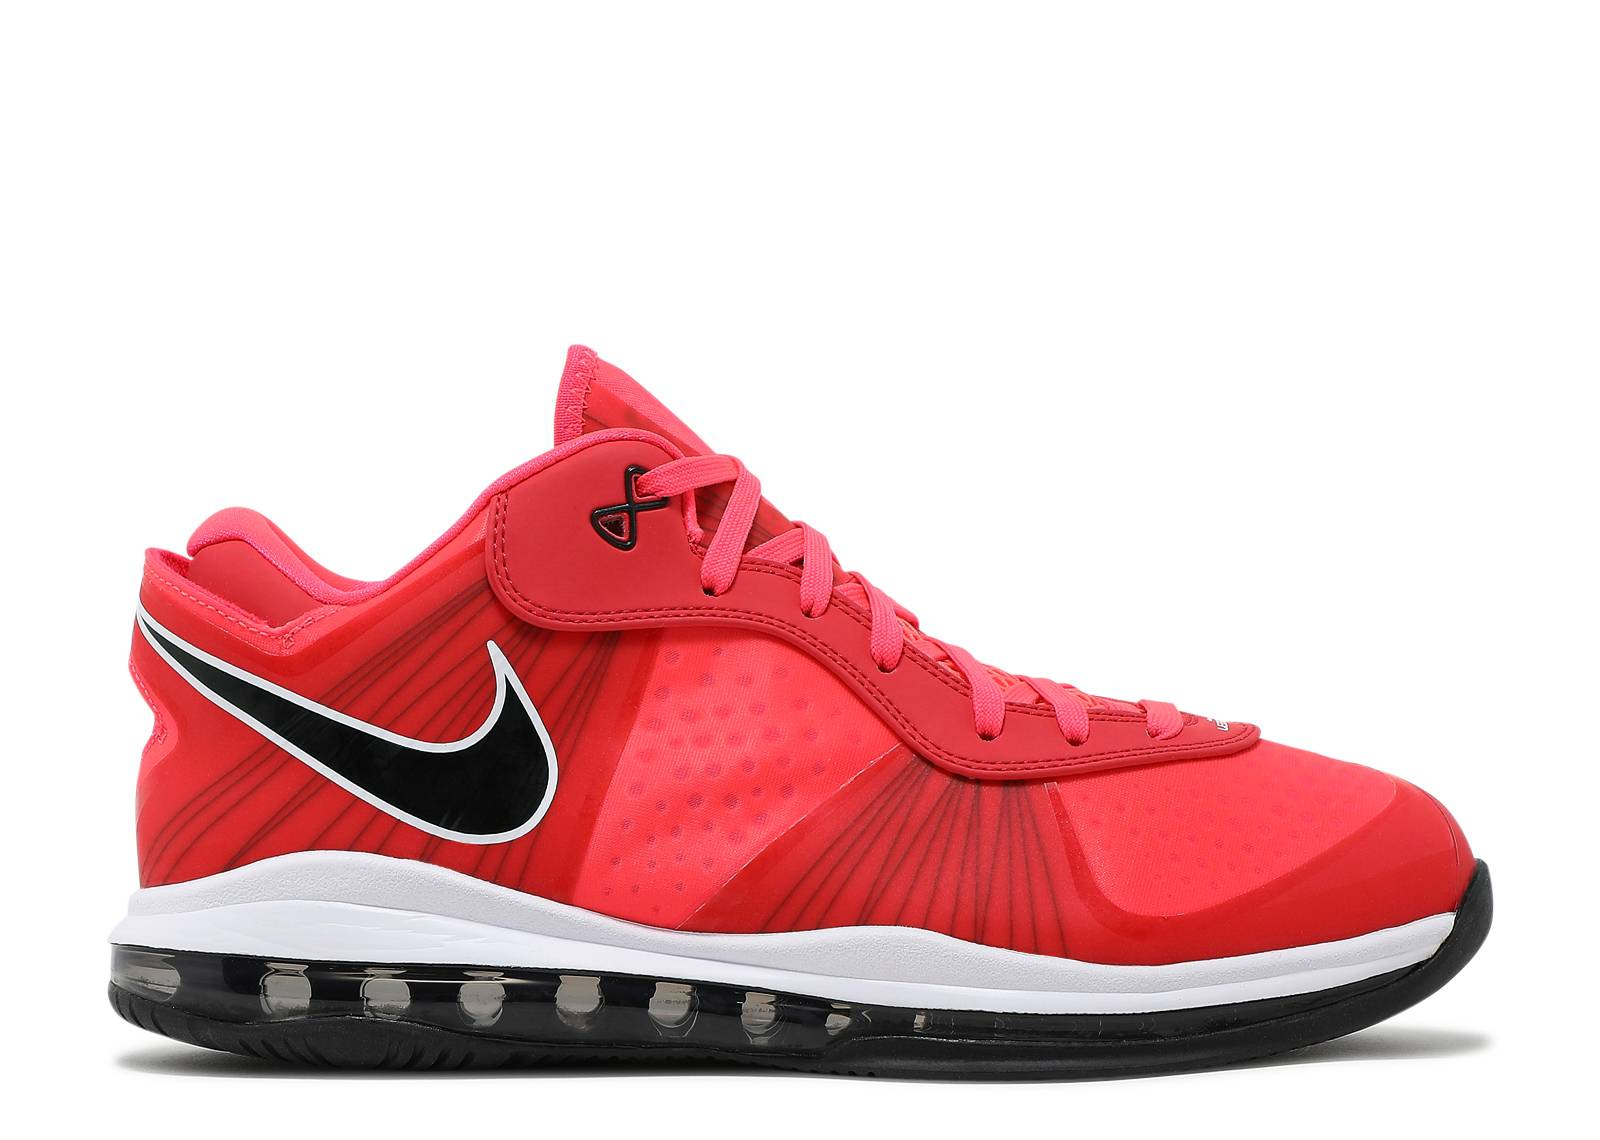 "LeBron 8 V/2 Low 'Solar Red' ""Solar Red"""